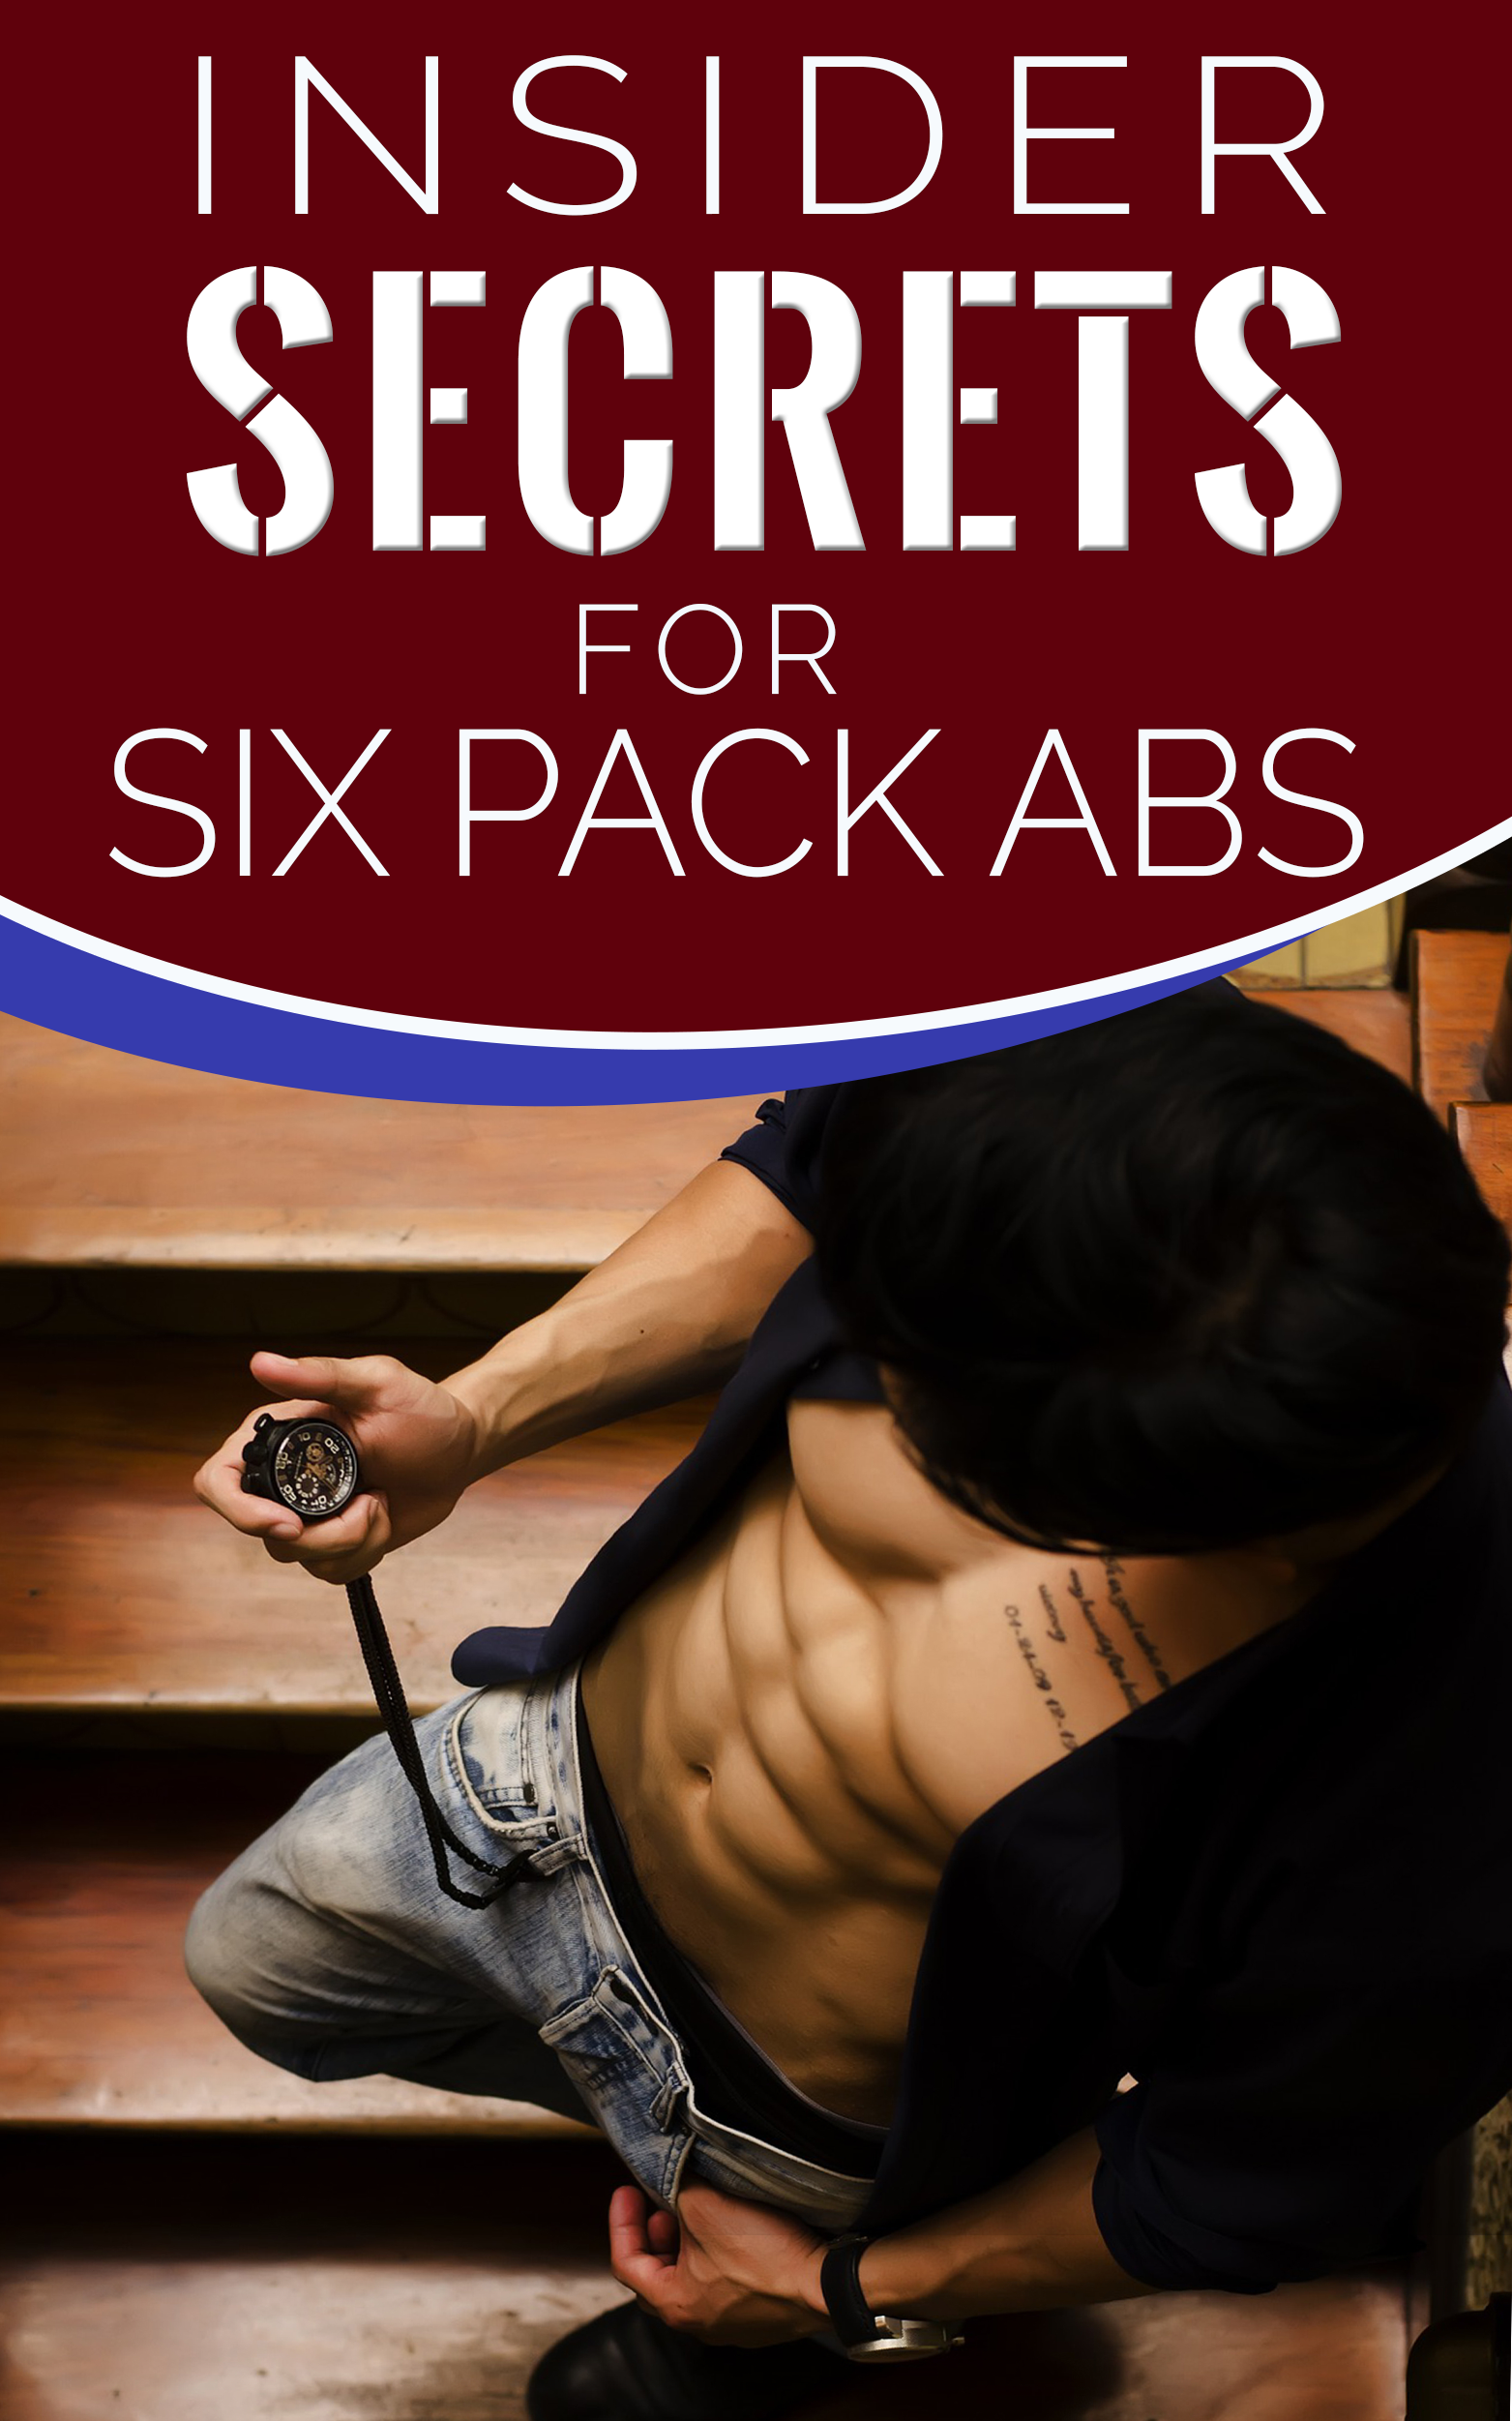 Discover These Secrets To Six Pack Abs In This Free eBook